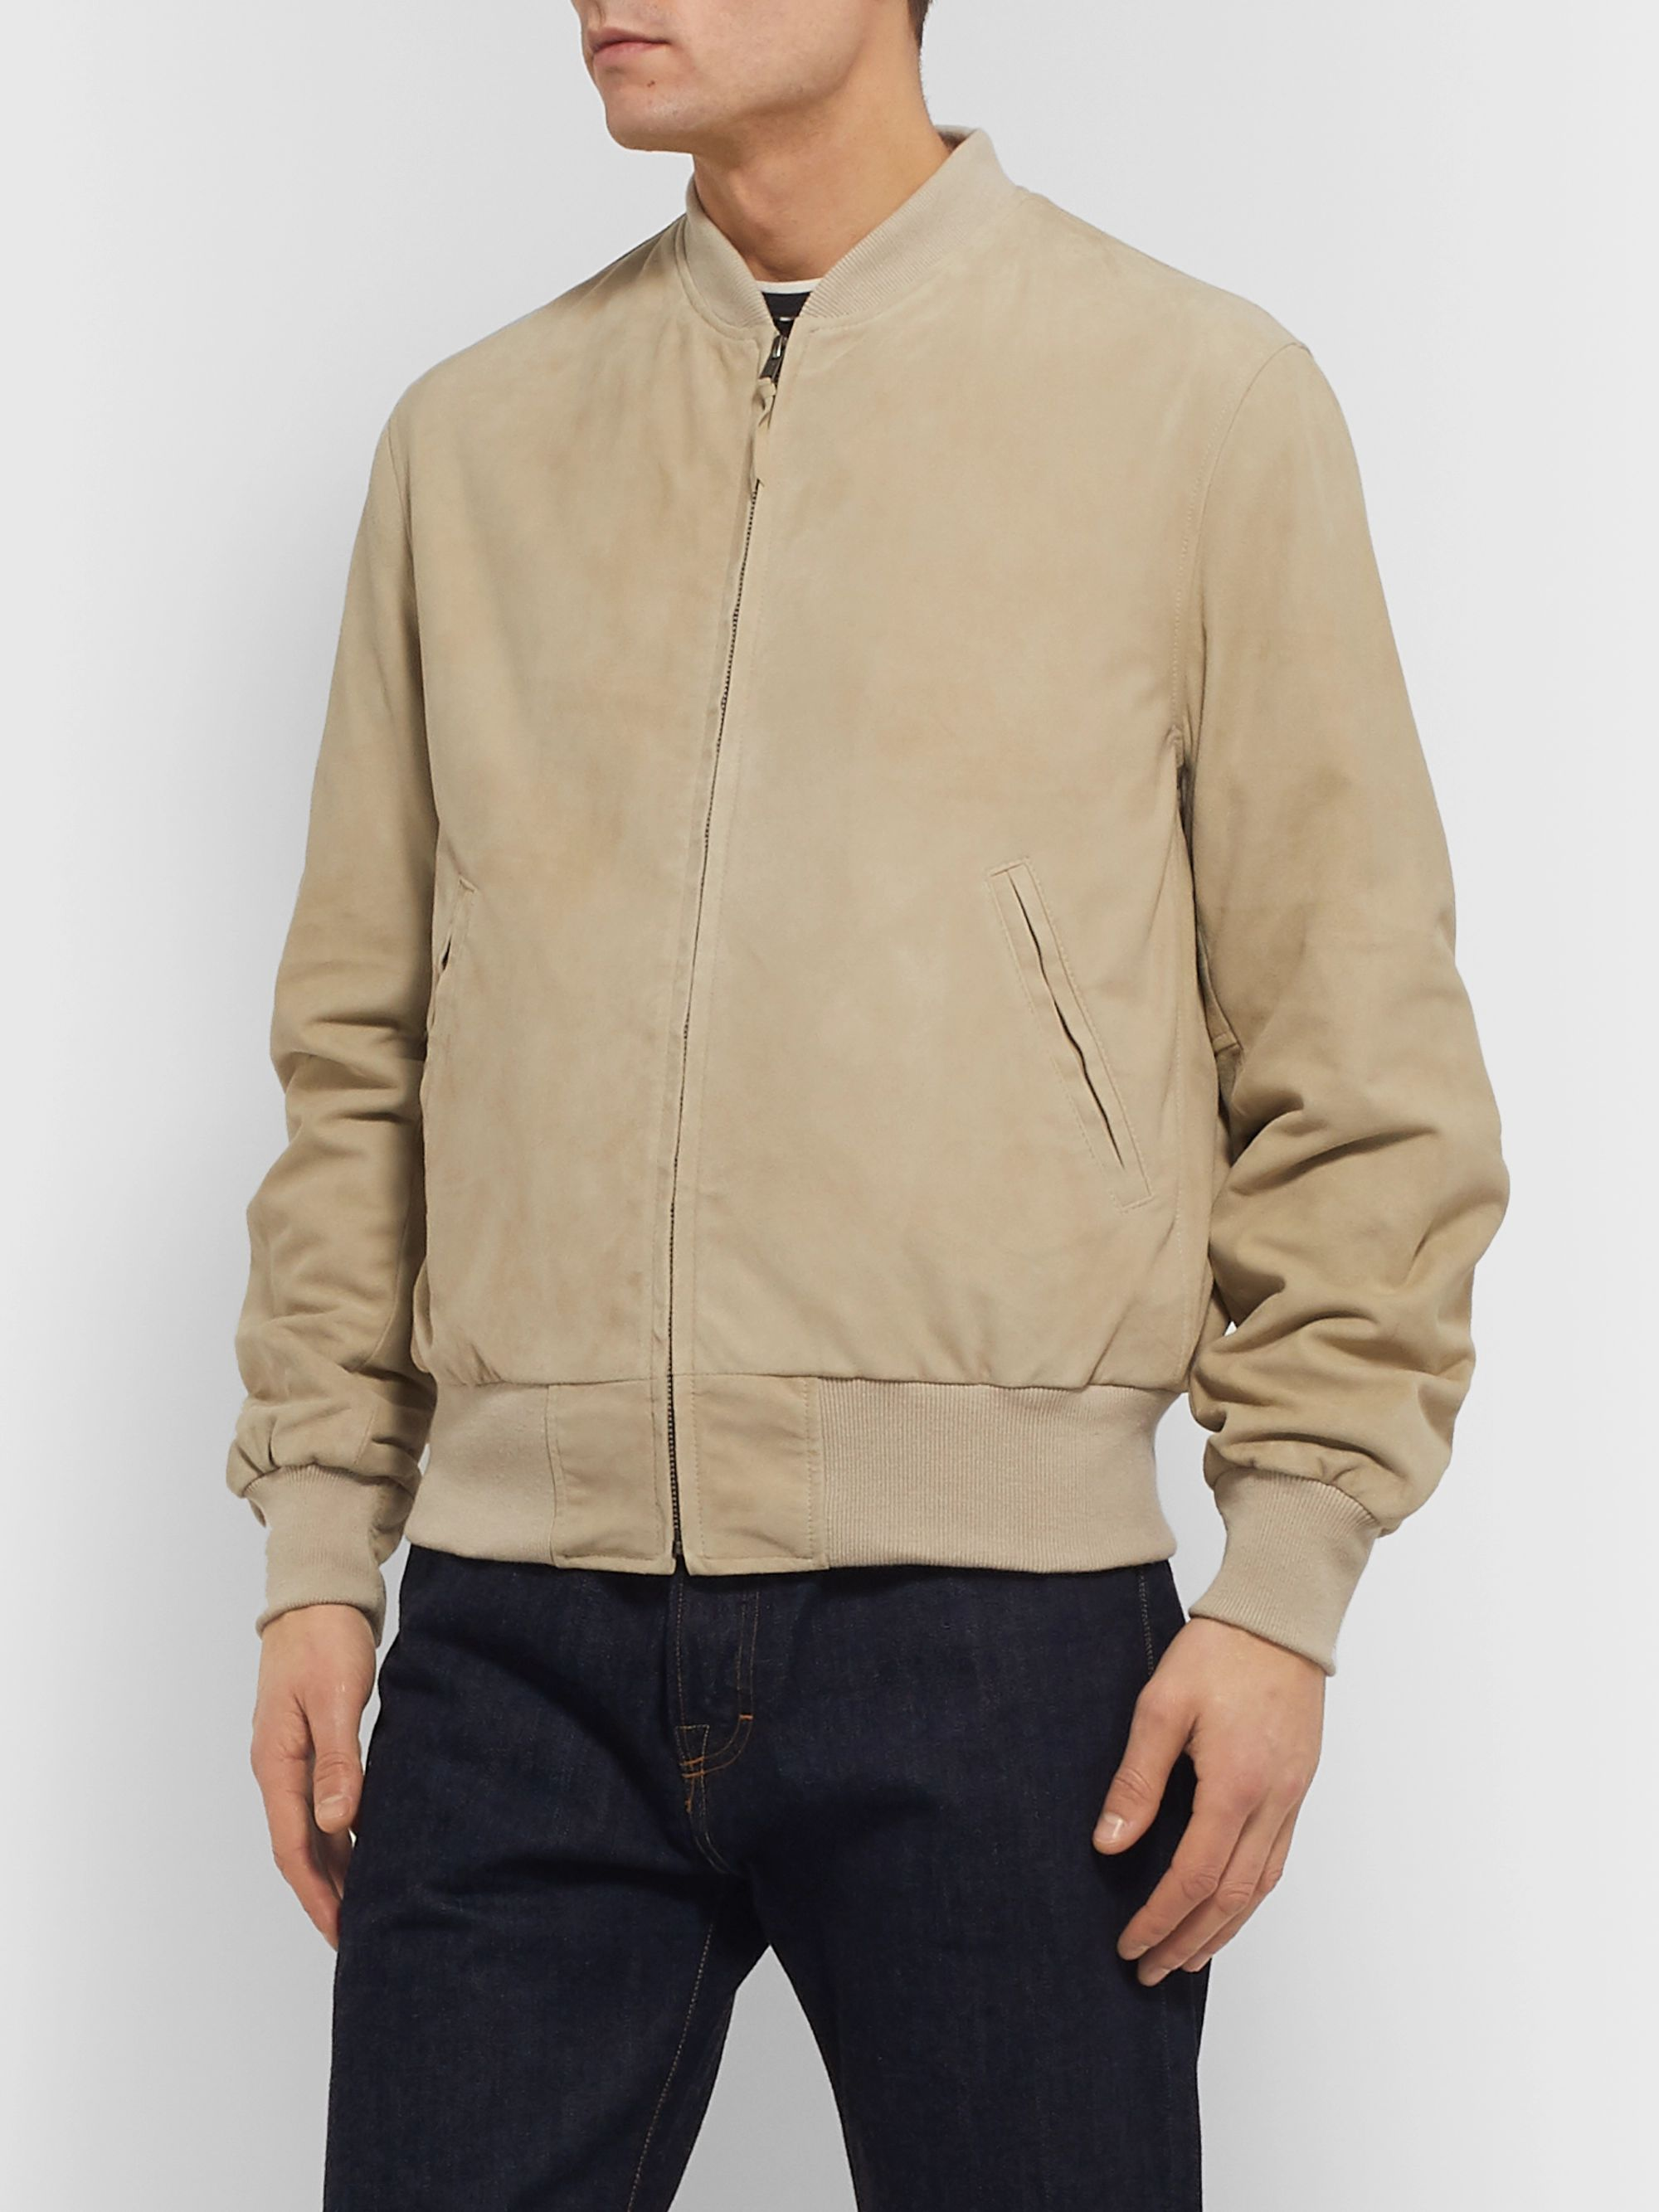 Golden Bear Suede Bomber Jacket